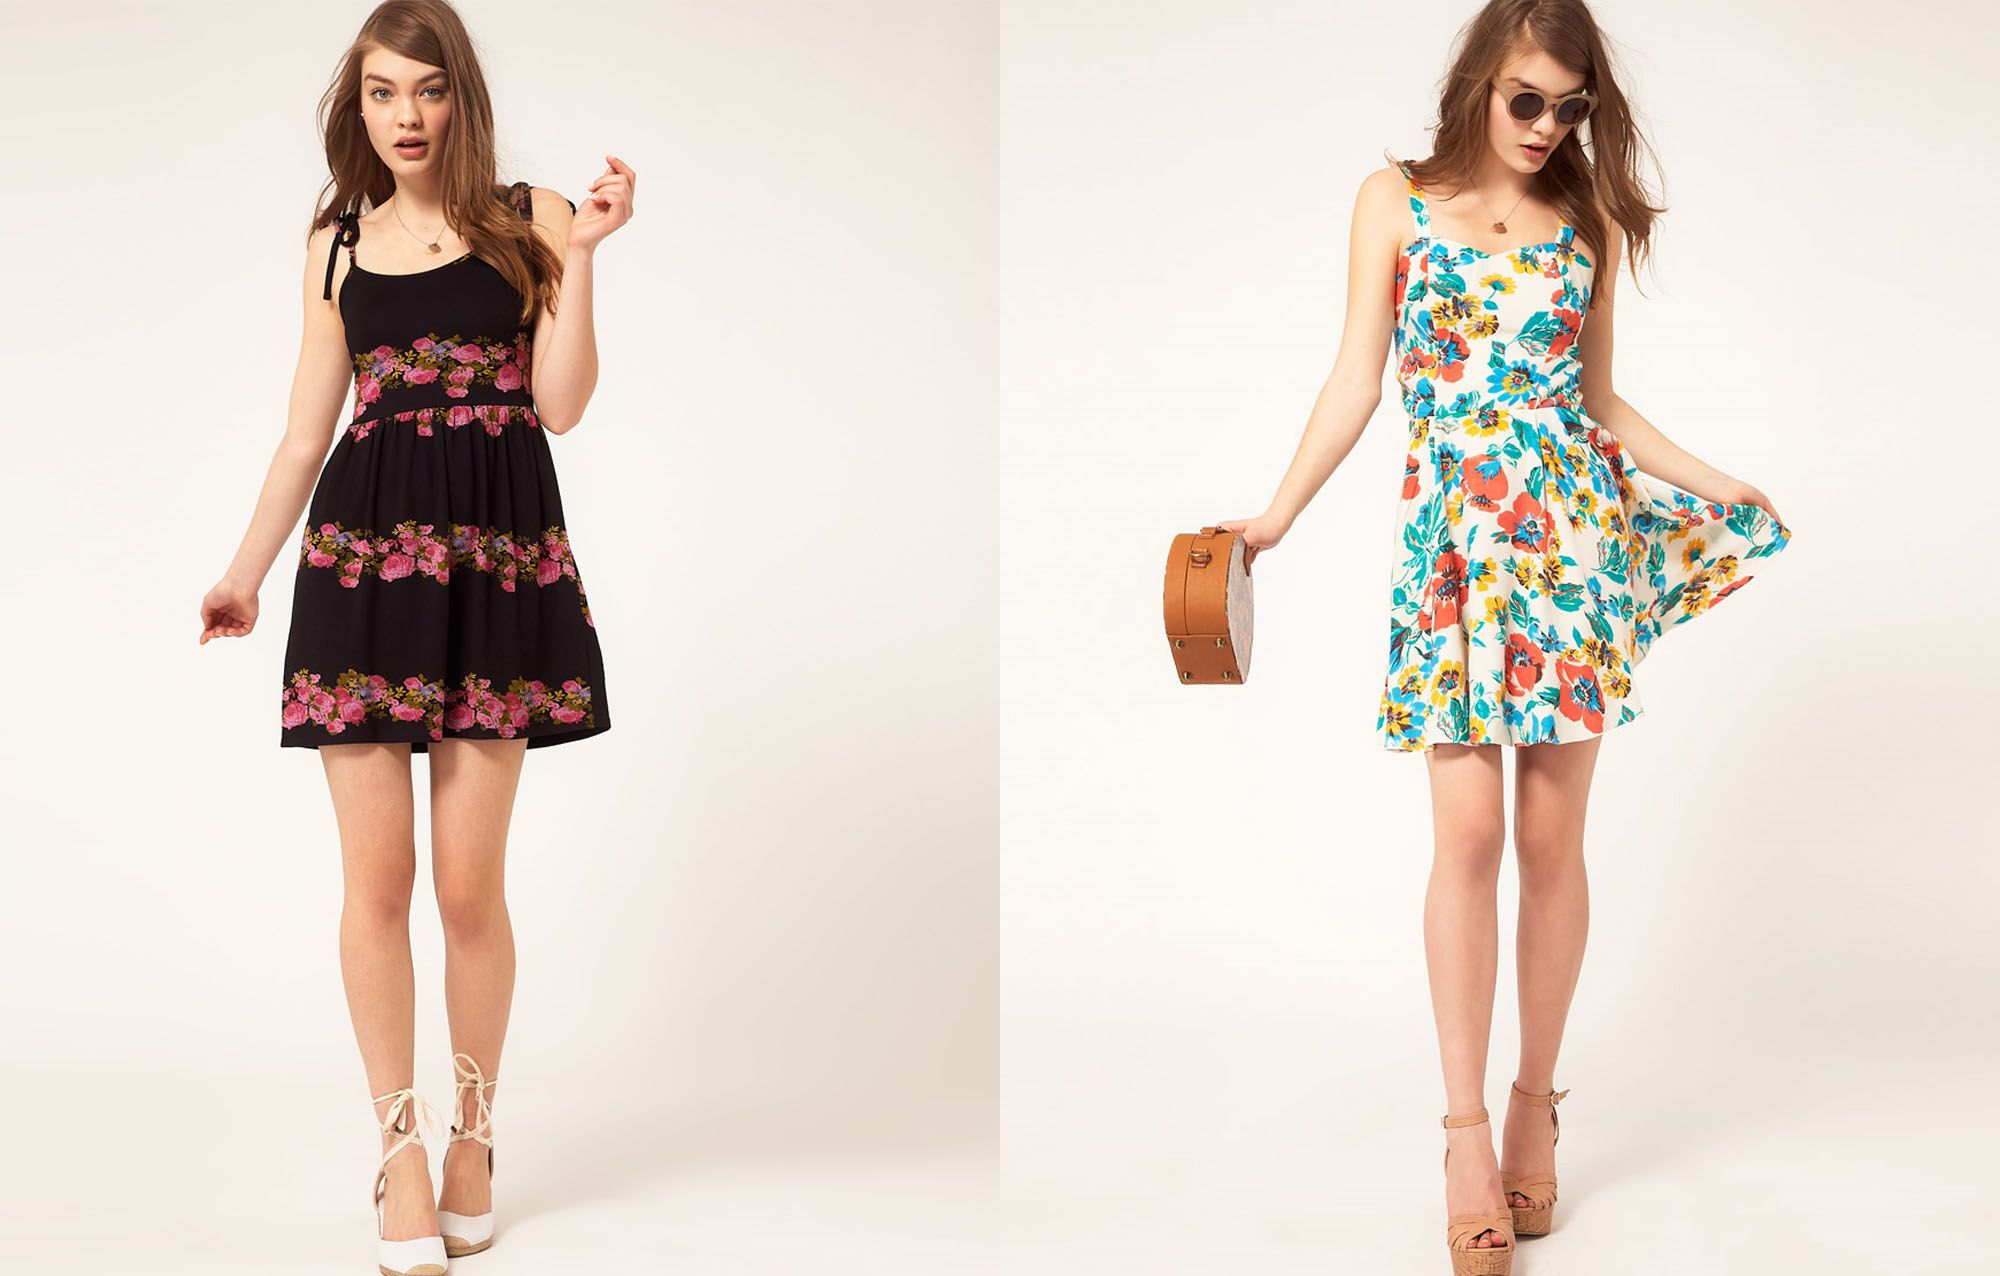 Fashionable dresses for summer